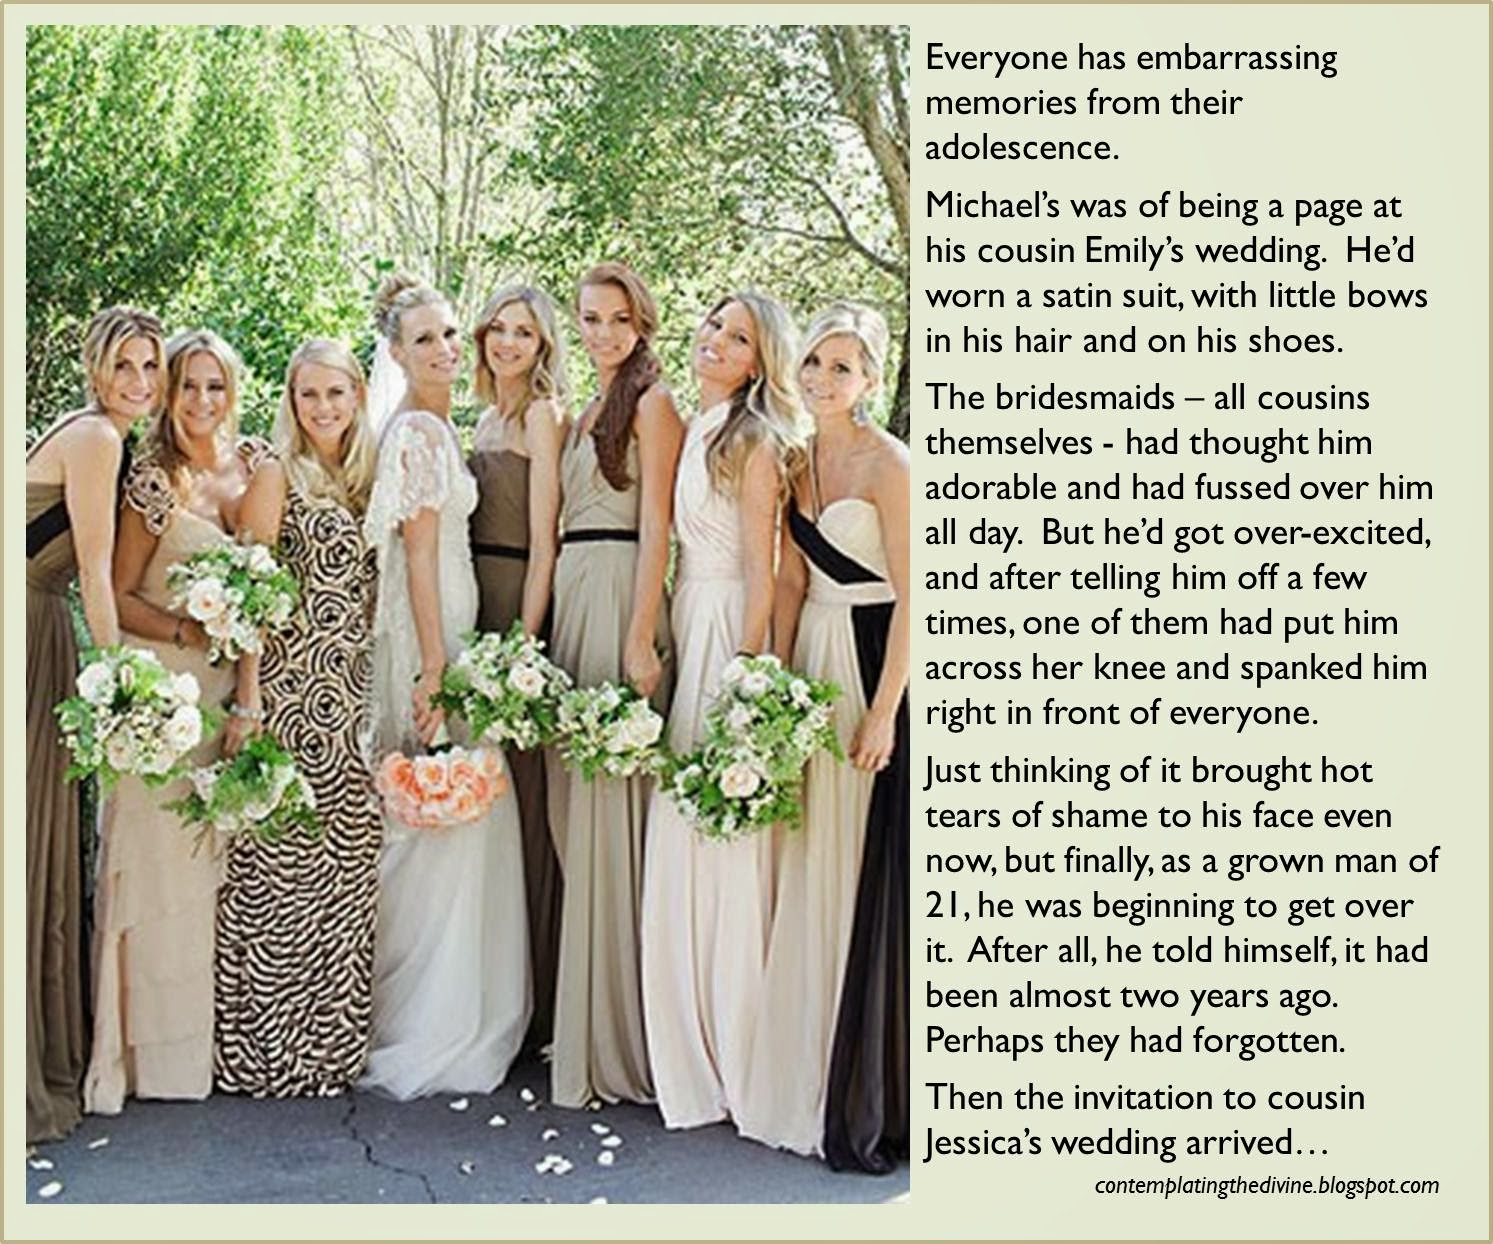 Bridesmaid humiliation